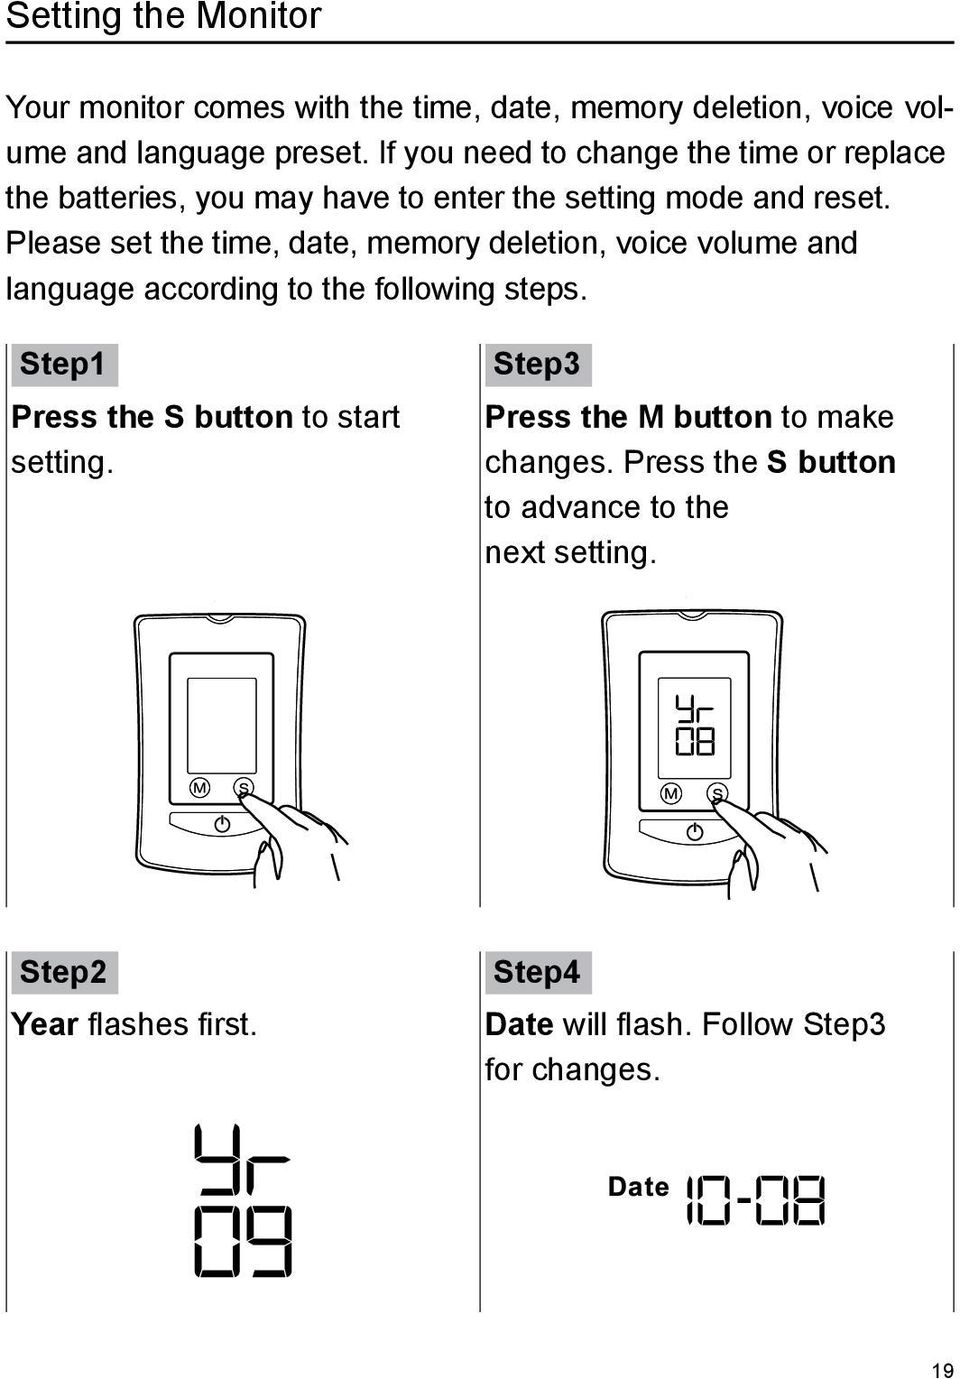 Please set the time, date, memory deletion, voice volume and language according to the following steps.